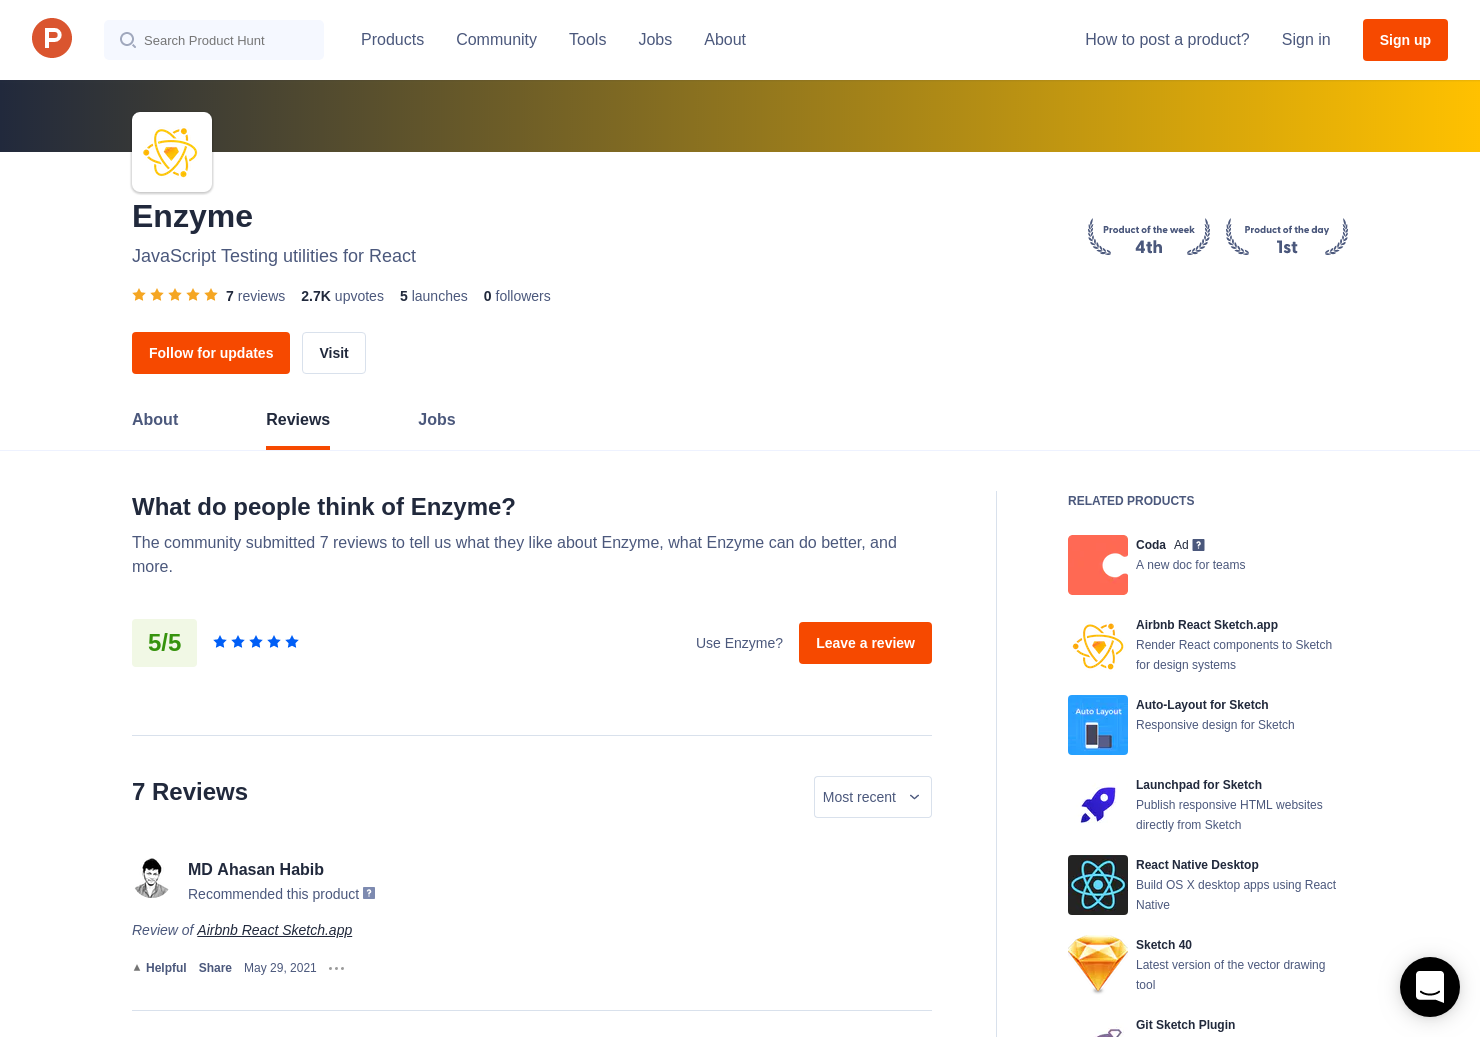 1 Airbnb React Sketch app Reviews - Pros, Cons and Rating